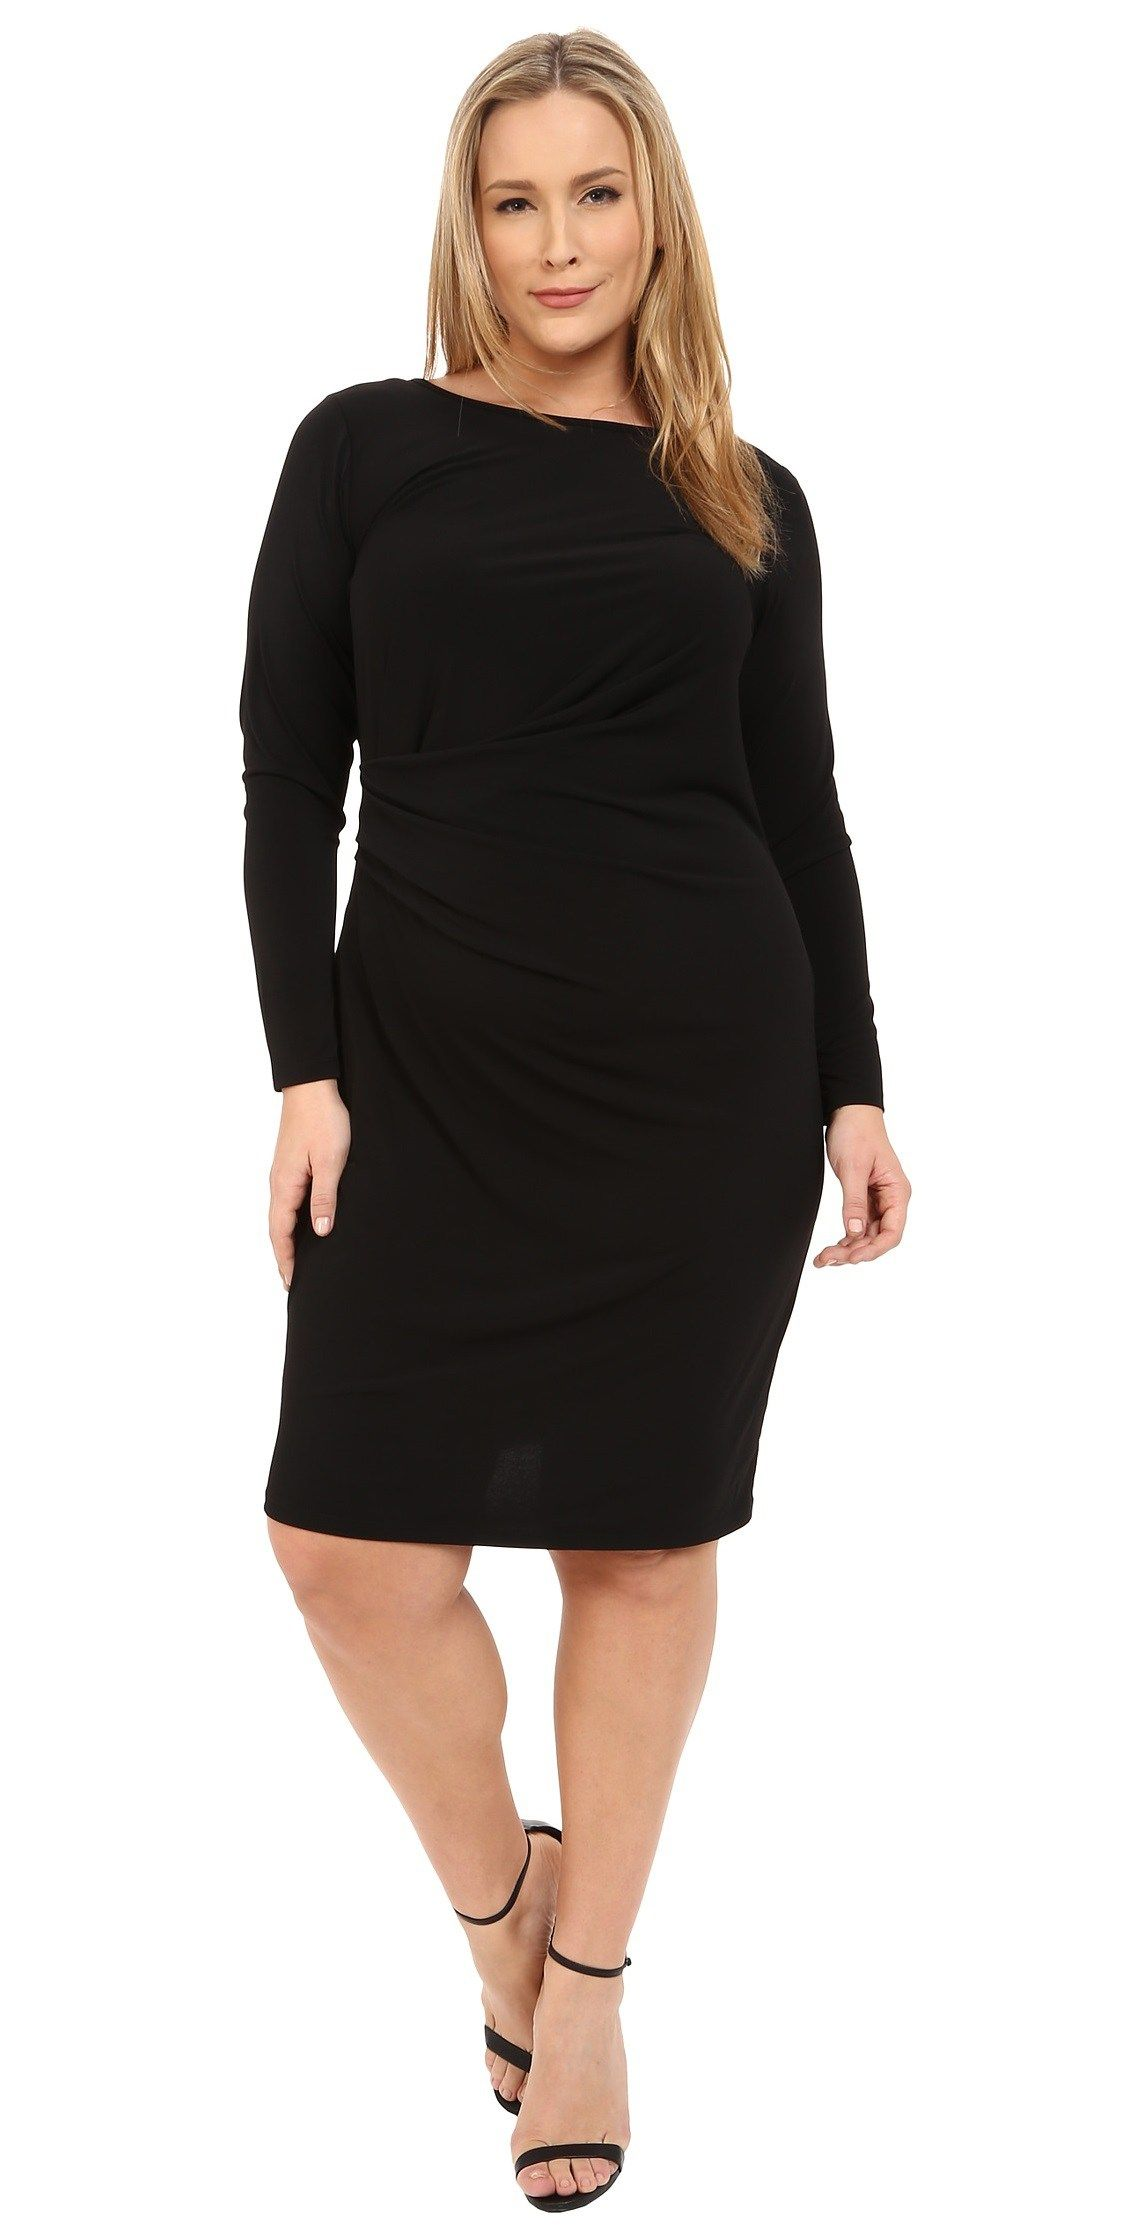 18 Plus Size Black Dresses With Sleeves Lbd Black And Curvy